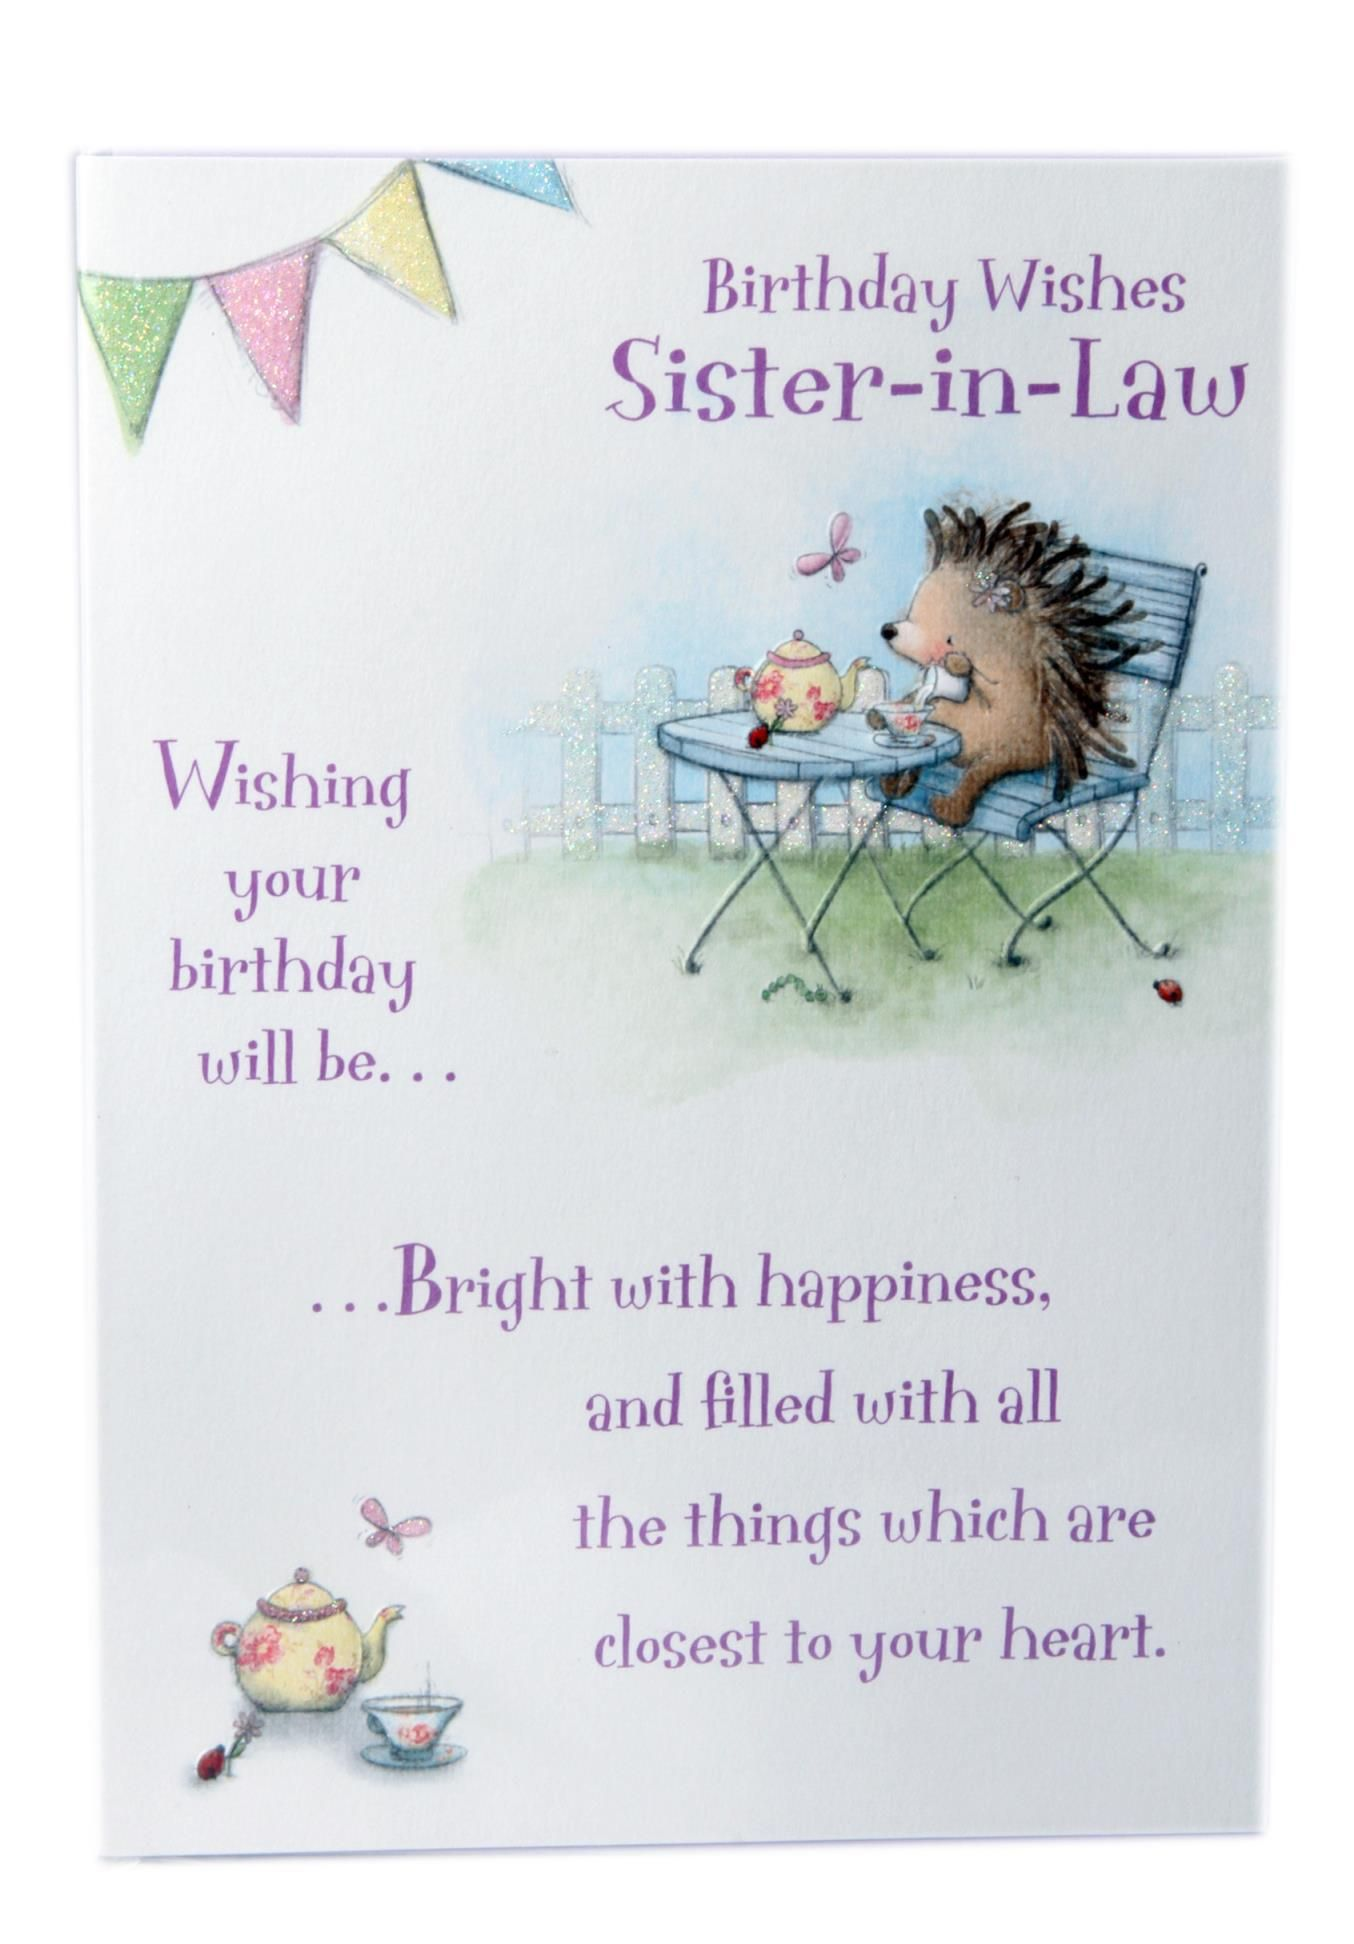 Funny birthday quotes for sister in law birthday pinterest birthday greetings kristyandbryce Gallery